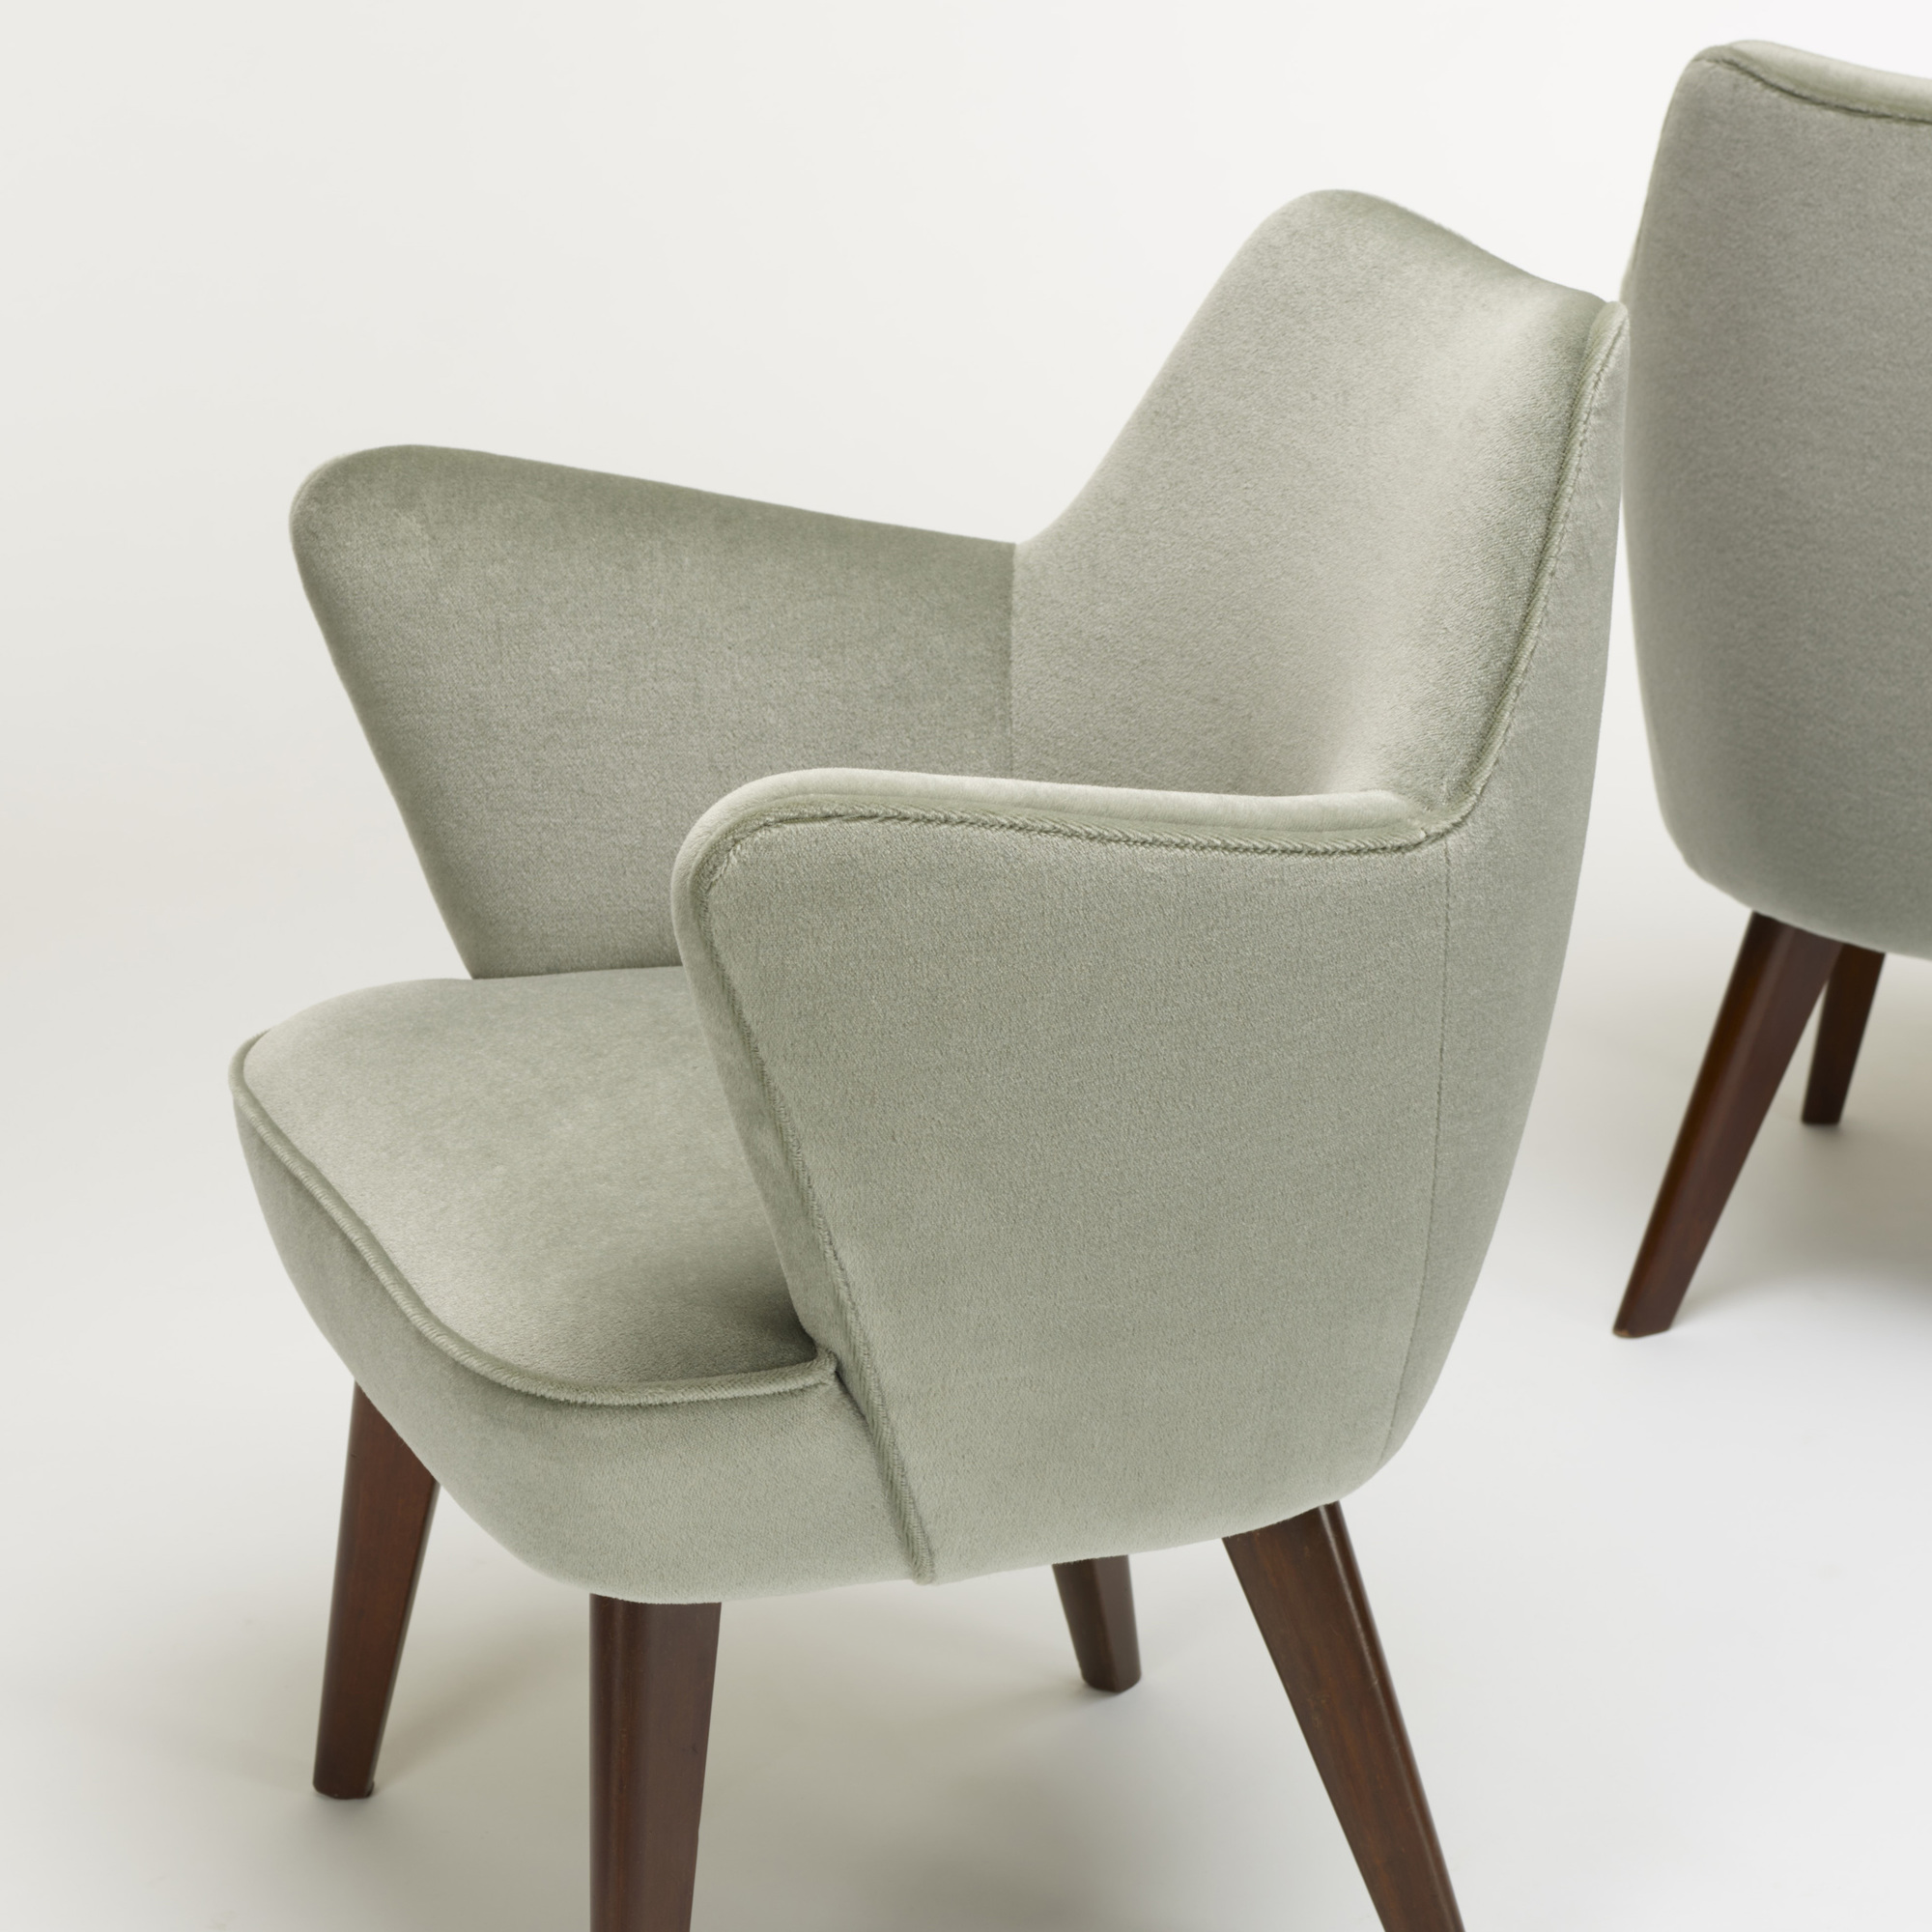 233: Gio Ponti / pair of armchairs from the Augustus Ocean Liner (3 of 3)